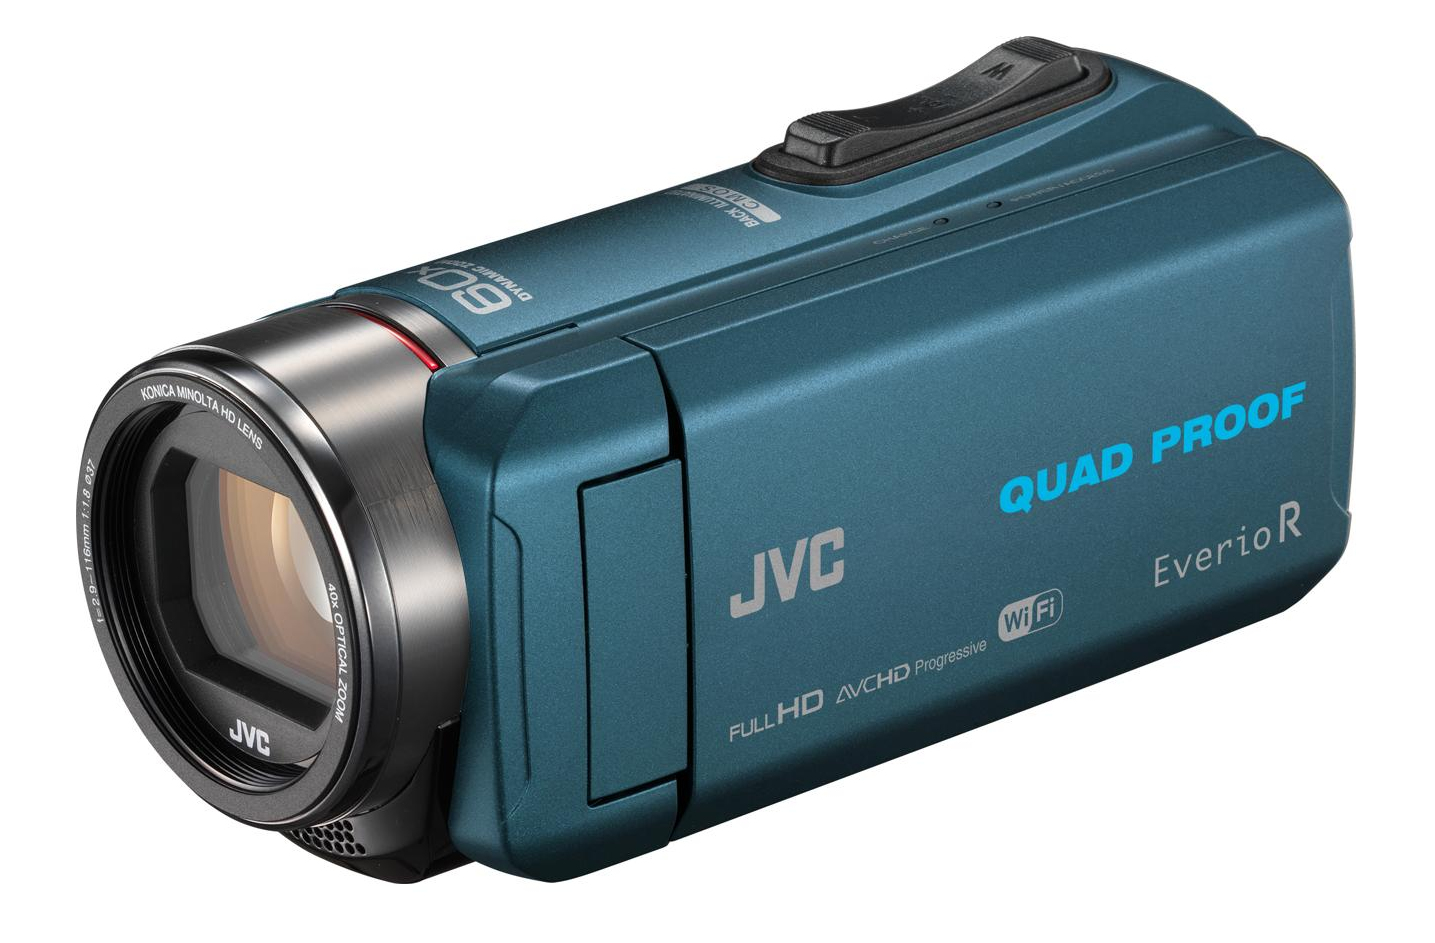 JVC GZ-RX645AEK hand-held camcorder